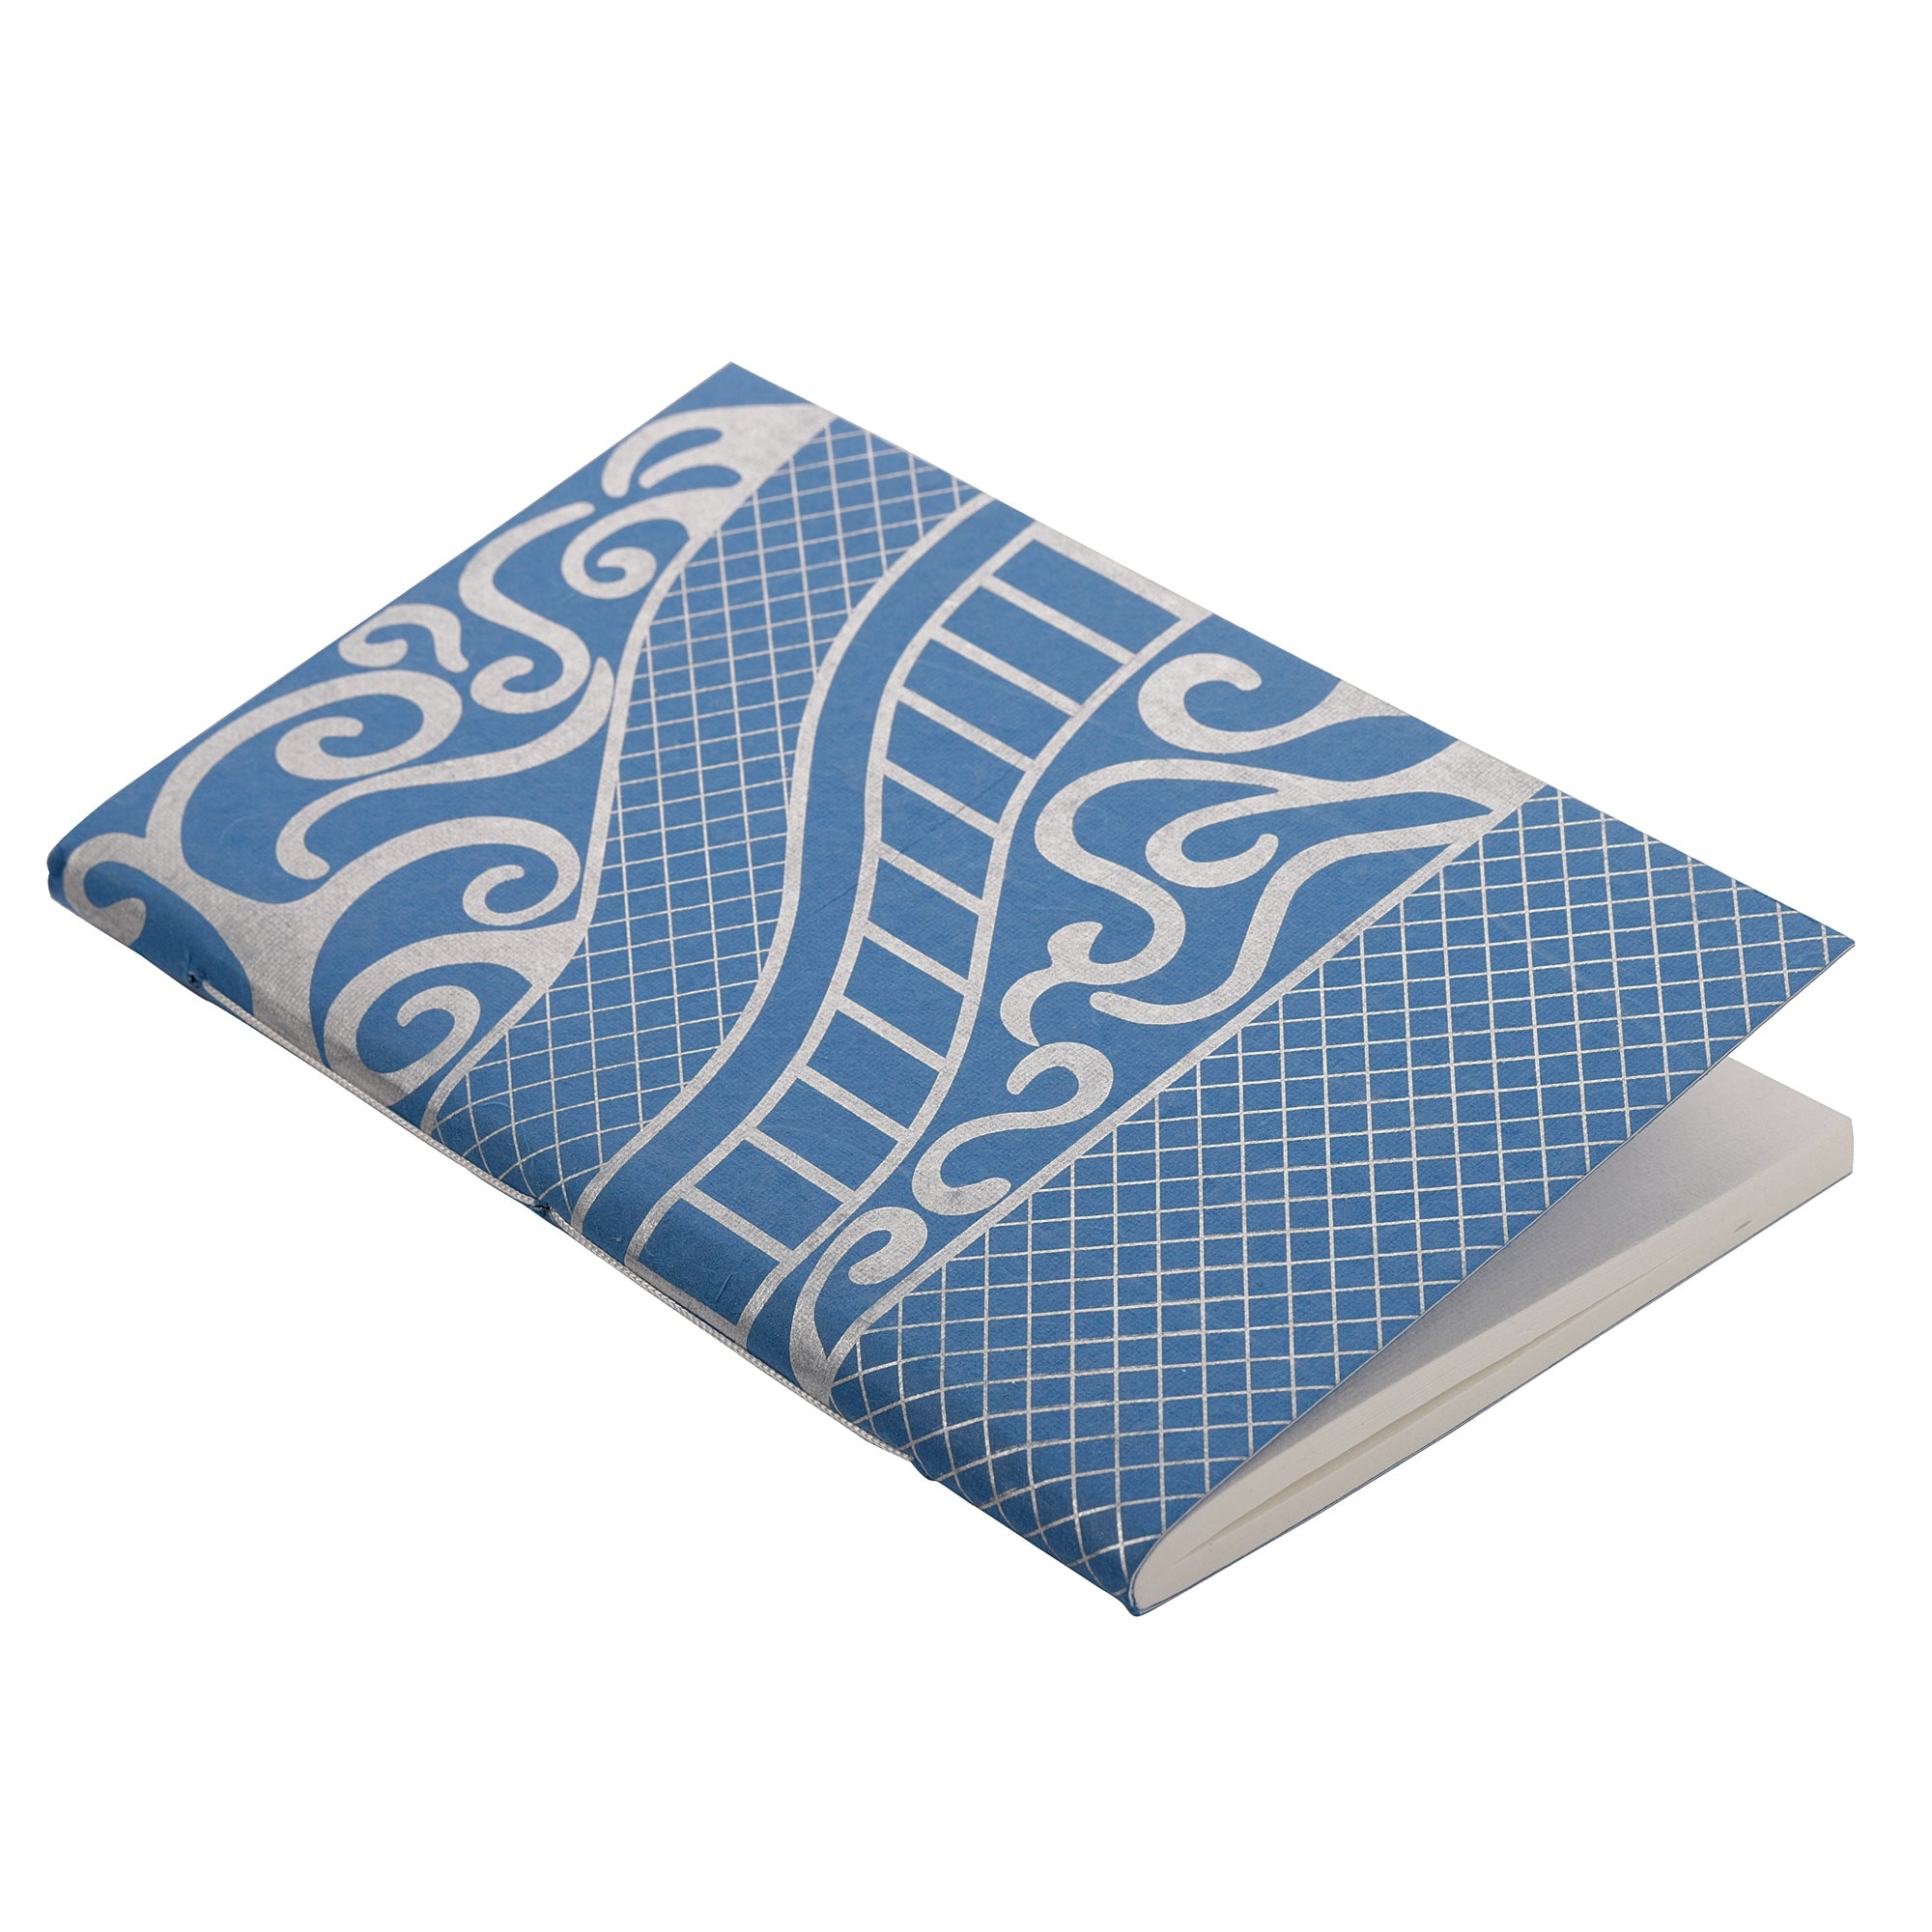 Gates of Jaipur Royal Blue Journal